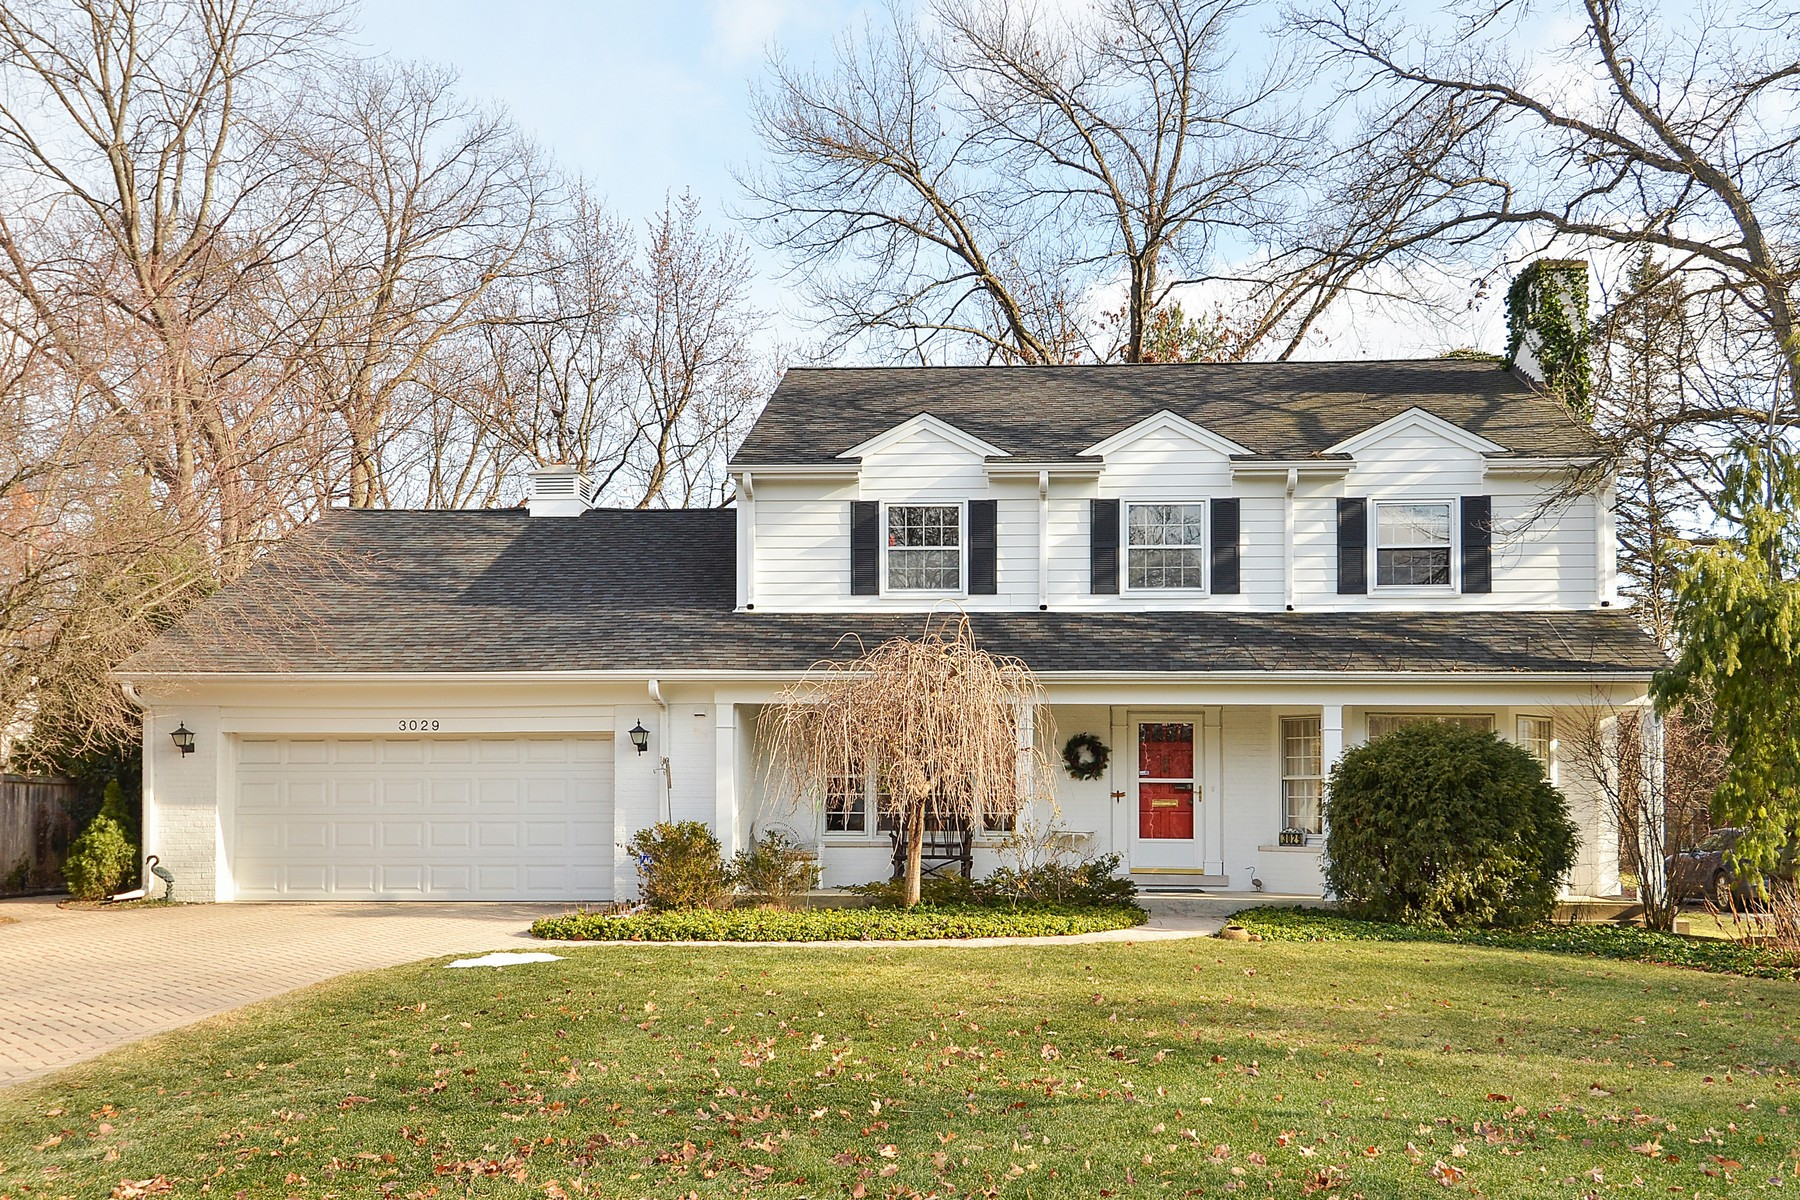 Single Family Home for Sale at Beautiful Spacious Home 3029 Iroquois Road Wilmette, Illinois, 60091 United States